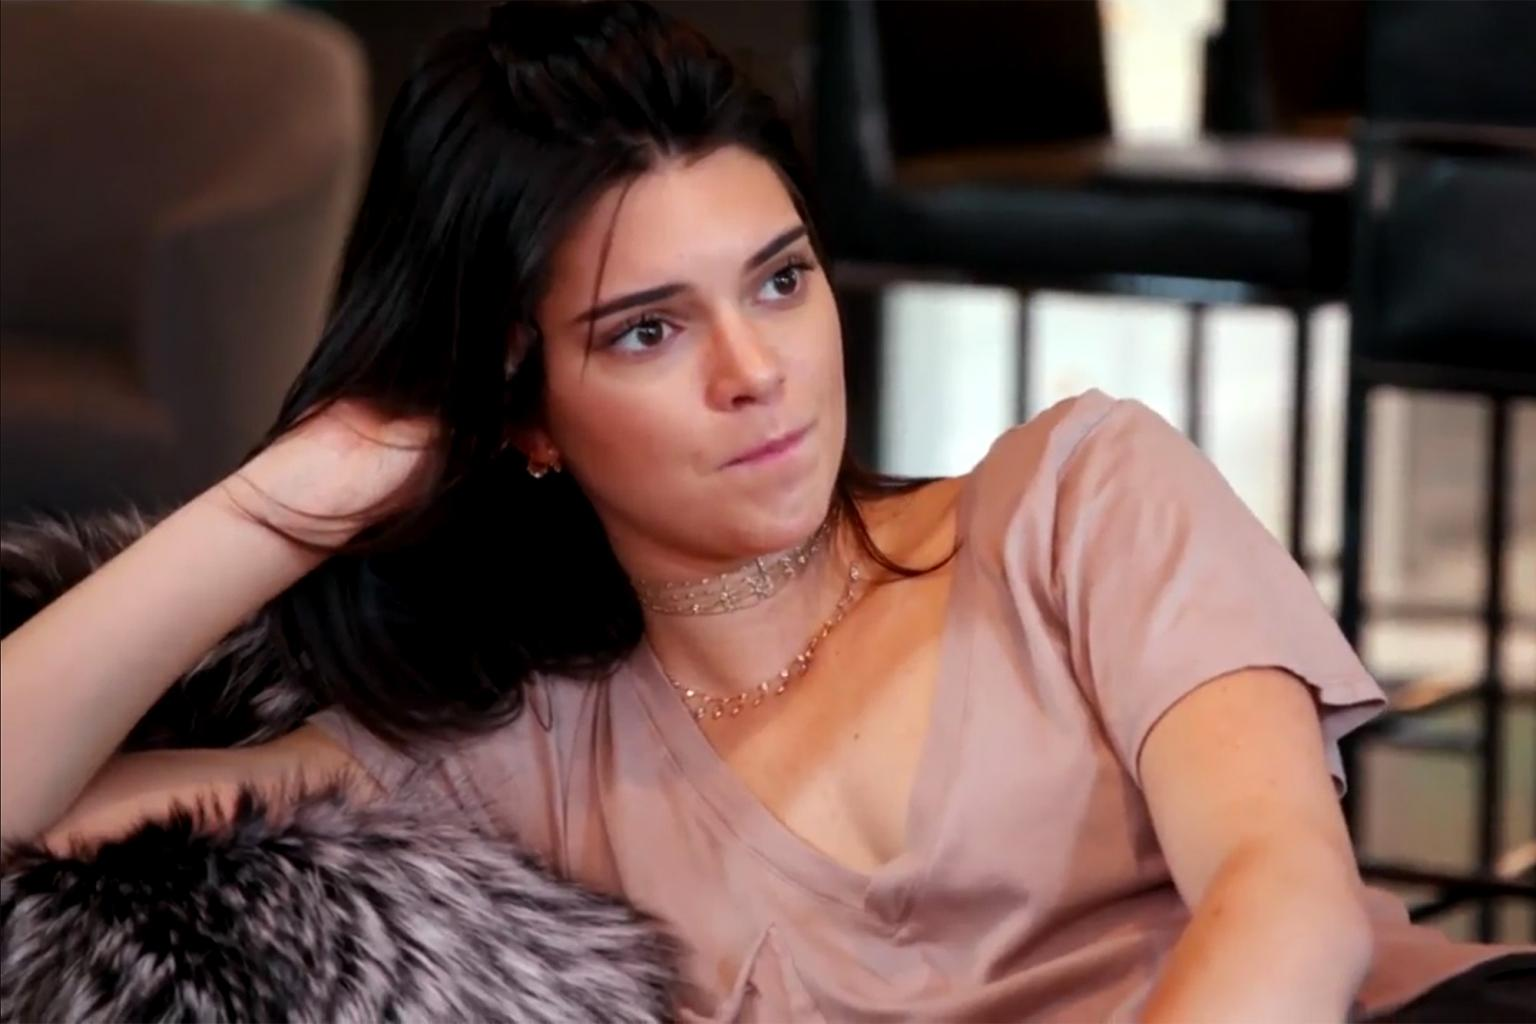 Kendall Jenner Recalls Being Hysterical & 'Crying' During Scary Run-in with Home Intruder